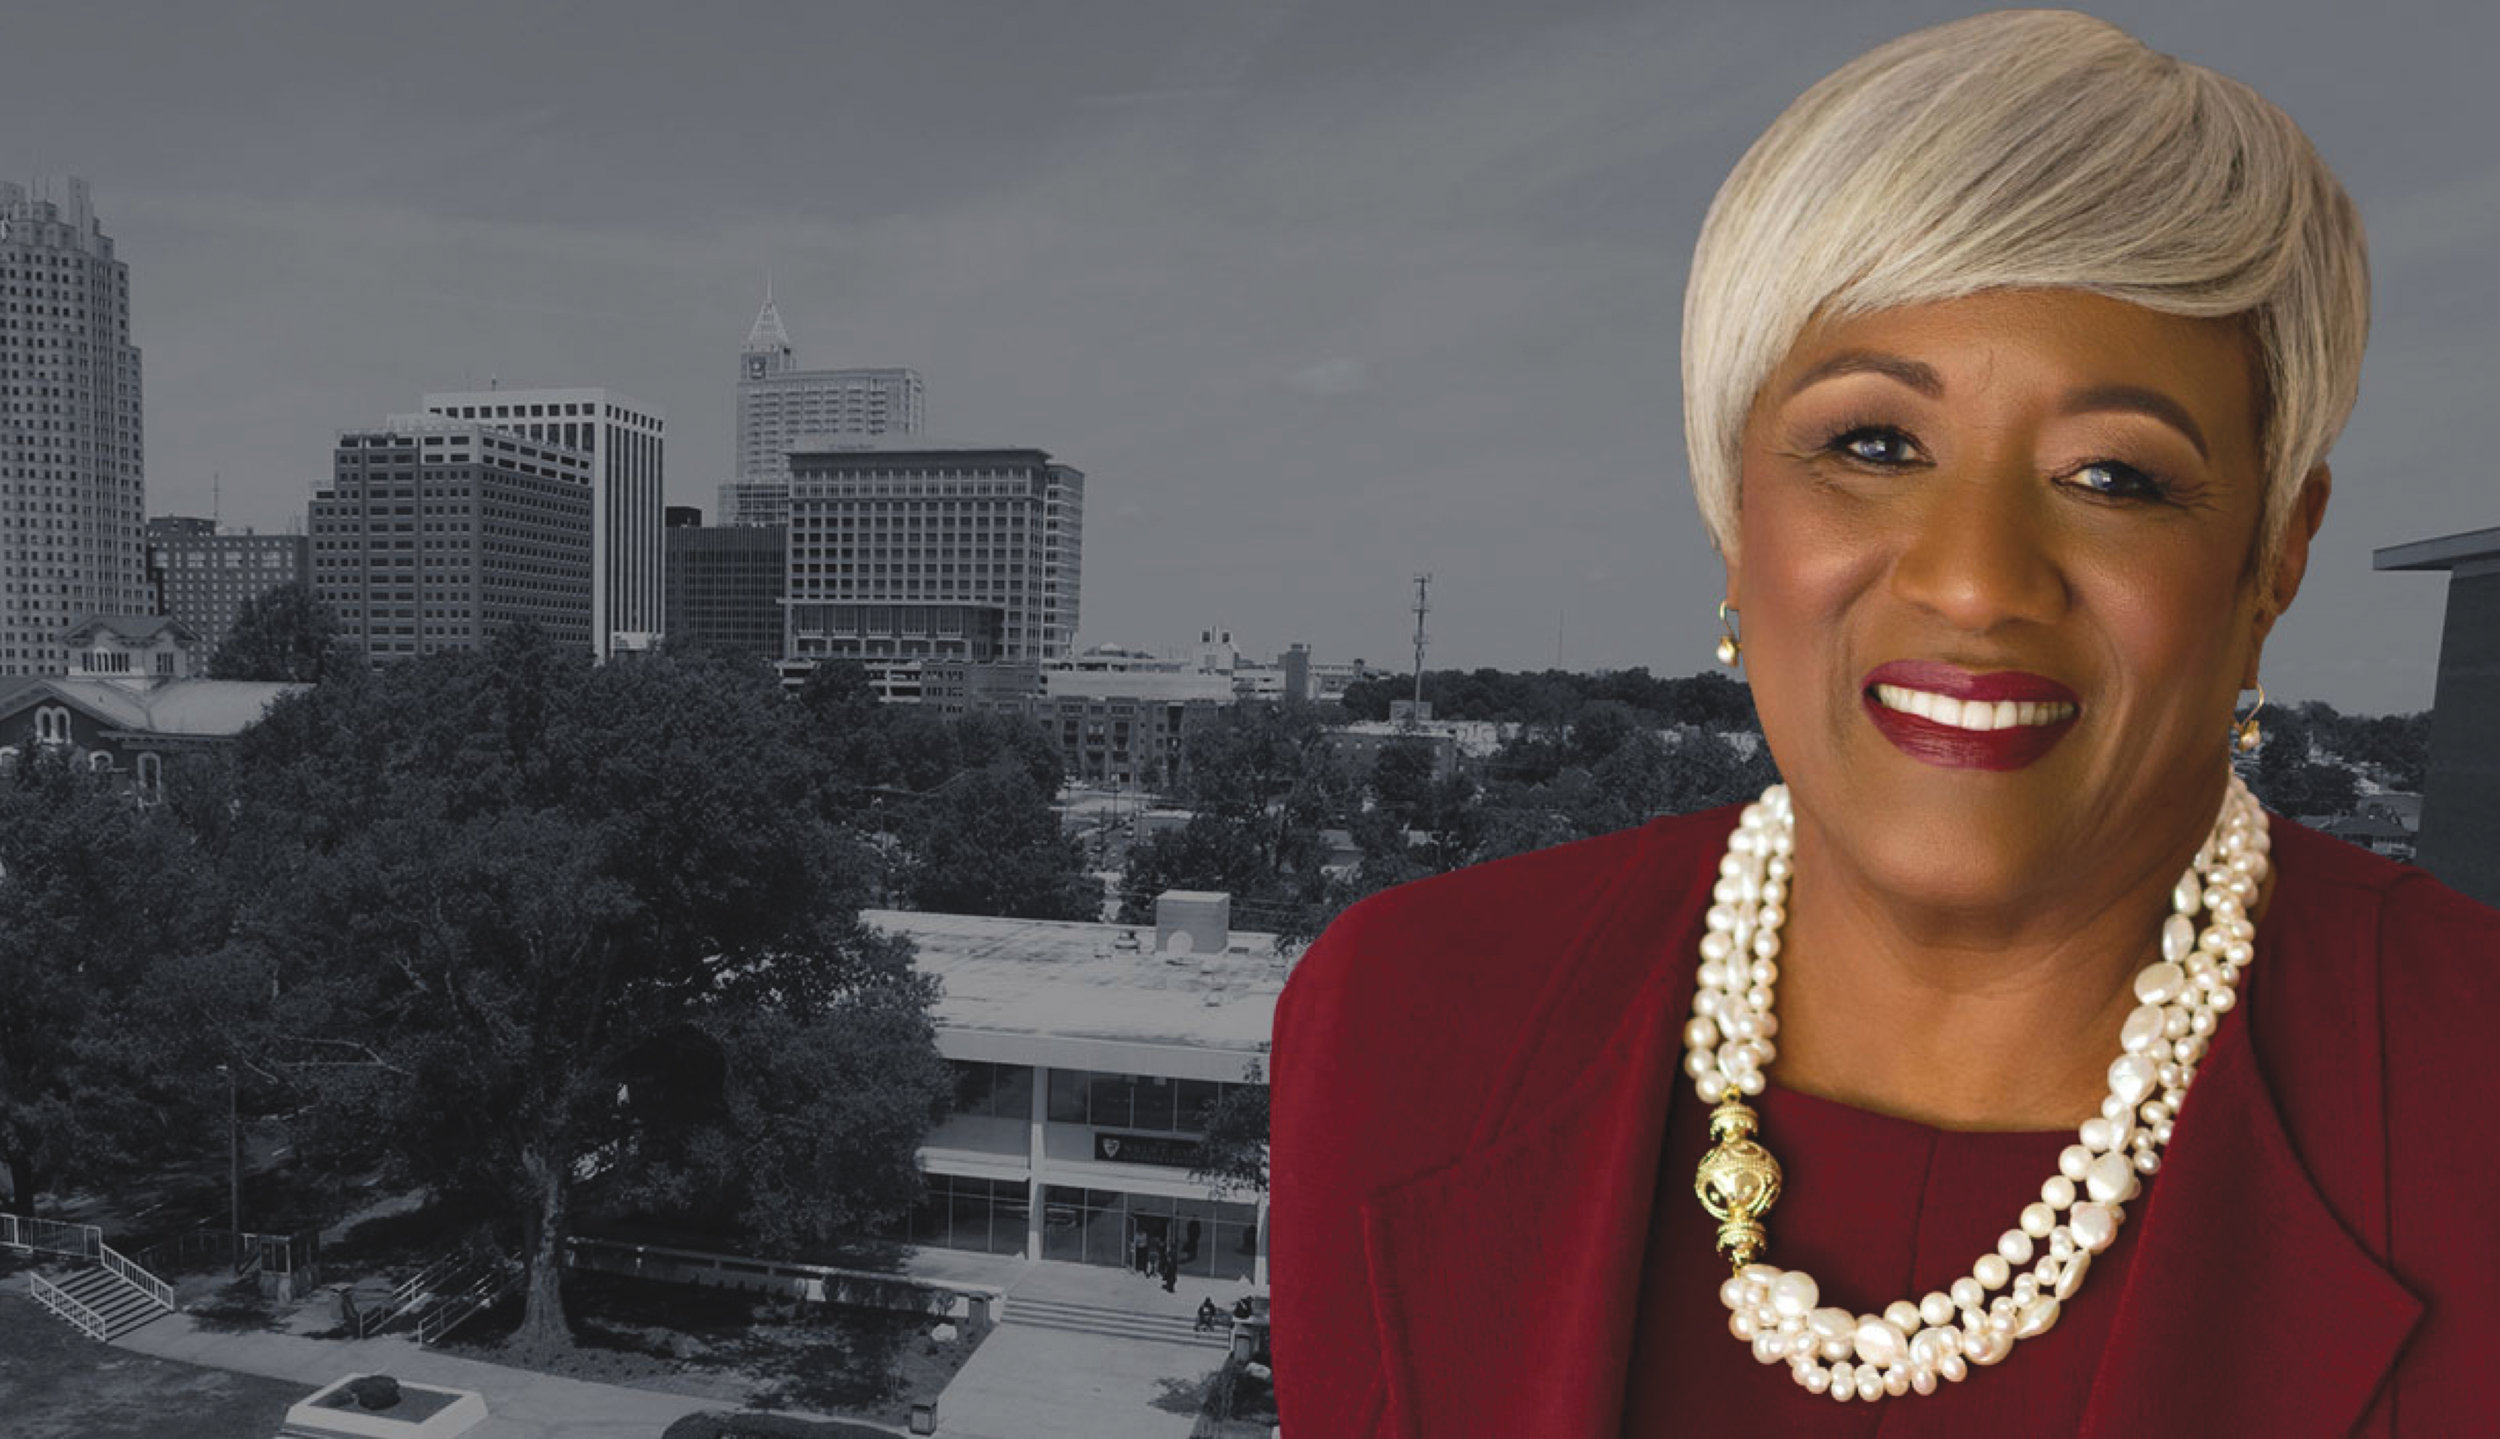 """Dr. Paulette R. Dillard said she's thankful and committed to intentional leadership of Shaw University as """"we continue to grow as an institutional leader in the Raleigh community and globally abroad."""" (Photo courtesy Shaw University)"""